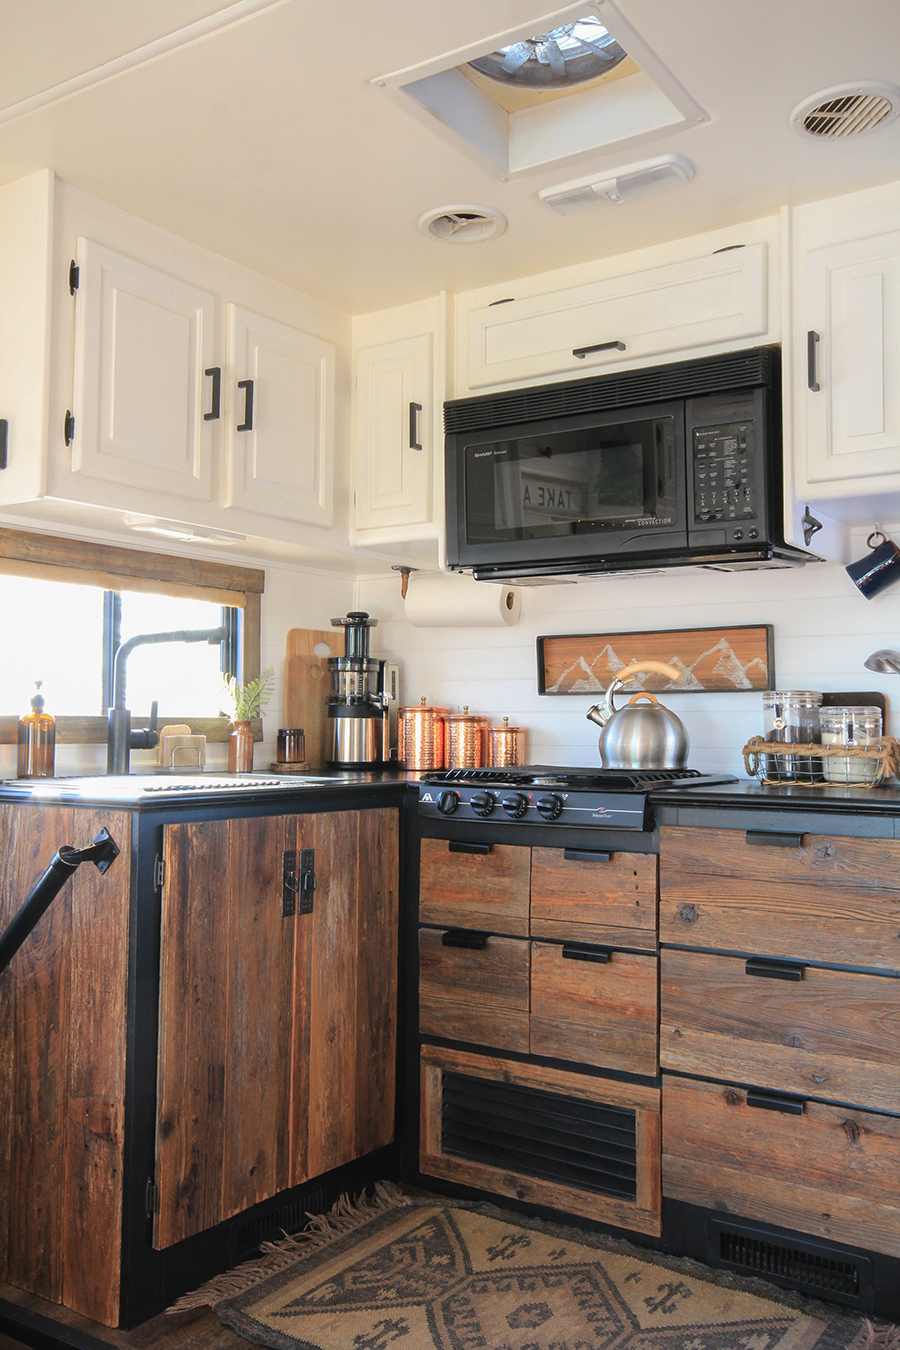 Rustic Modern RV with black countertops | MountainModernLife.com